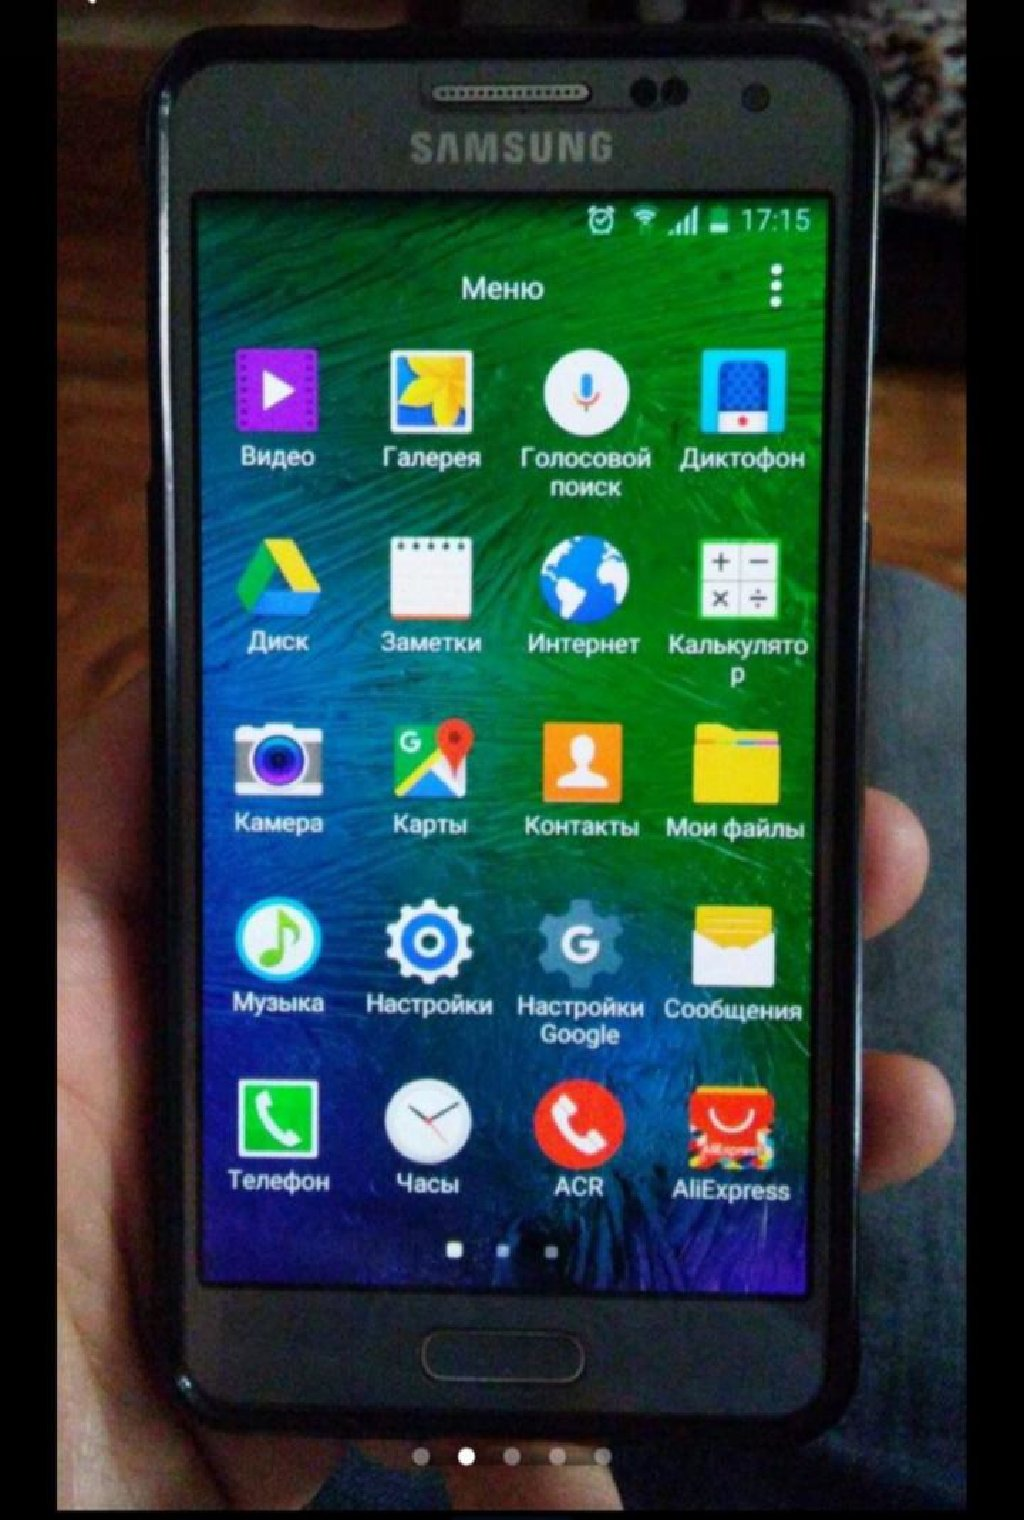 Samsung Galaxy Alpha 32 GB boz: Samsung Galaxy Alpha 32 GB boz